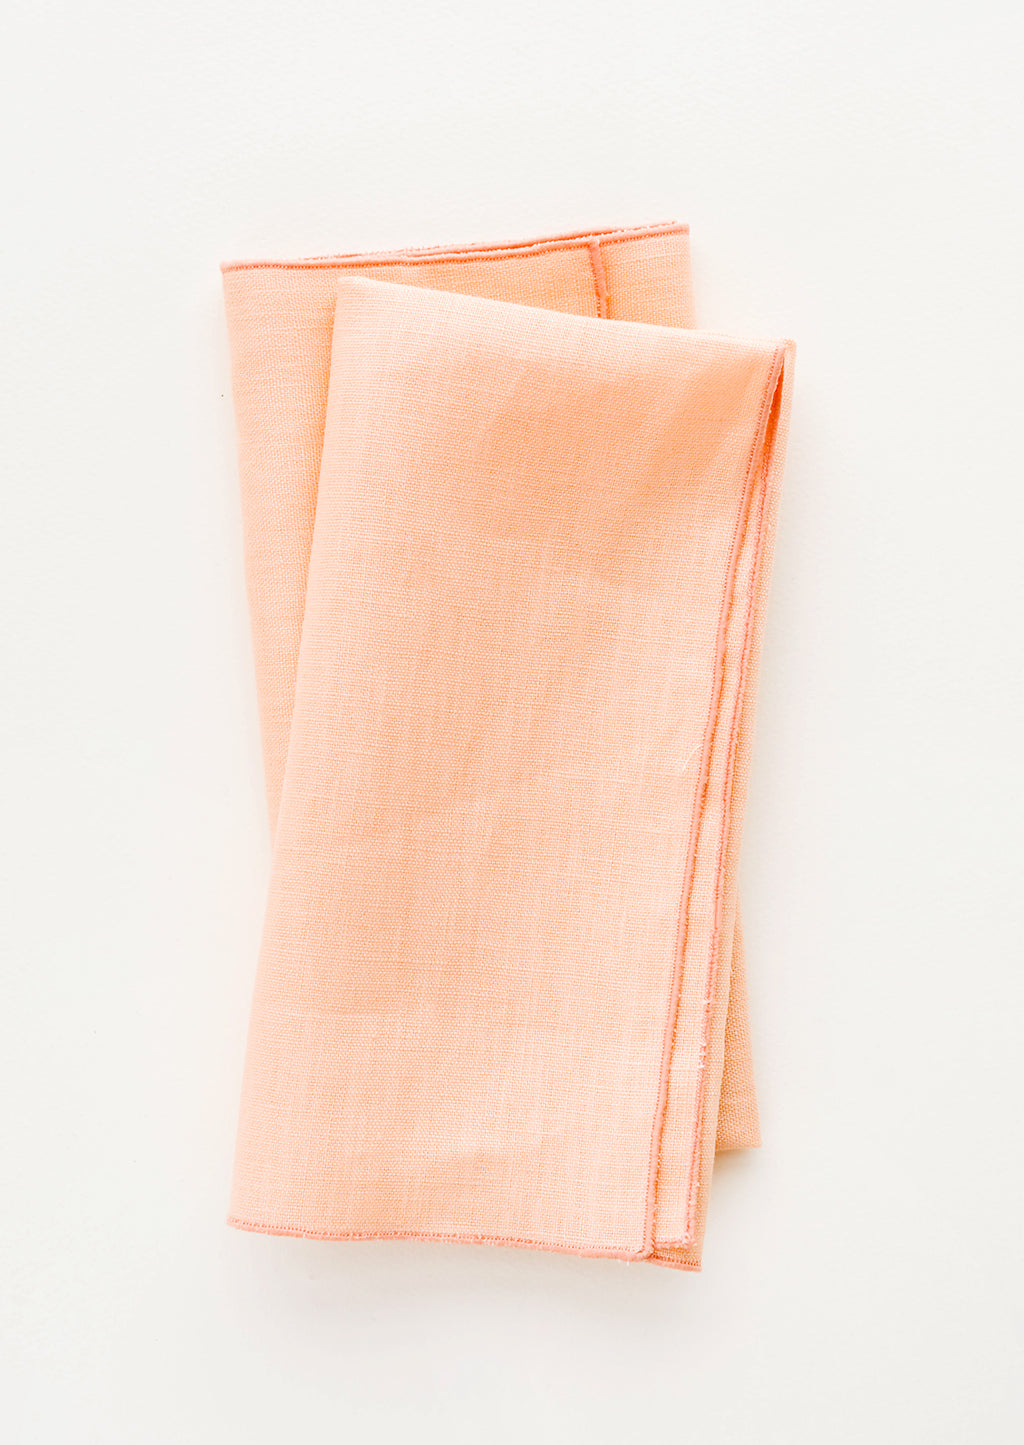 Peach: Pair of folded linen napkins in peach with tonal trim